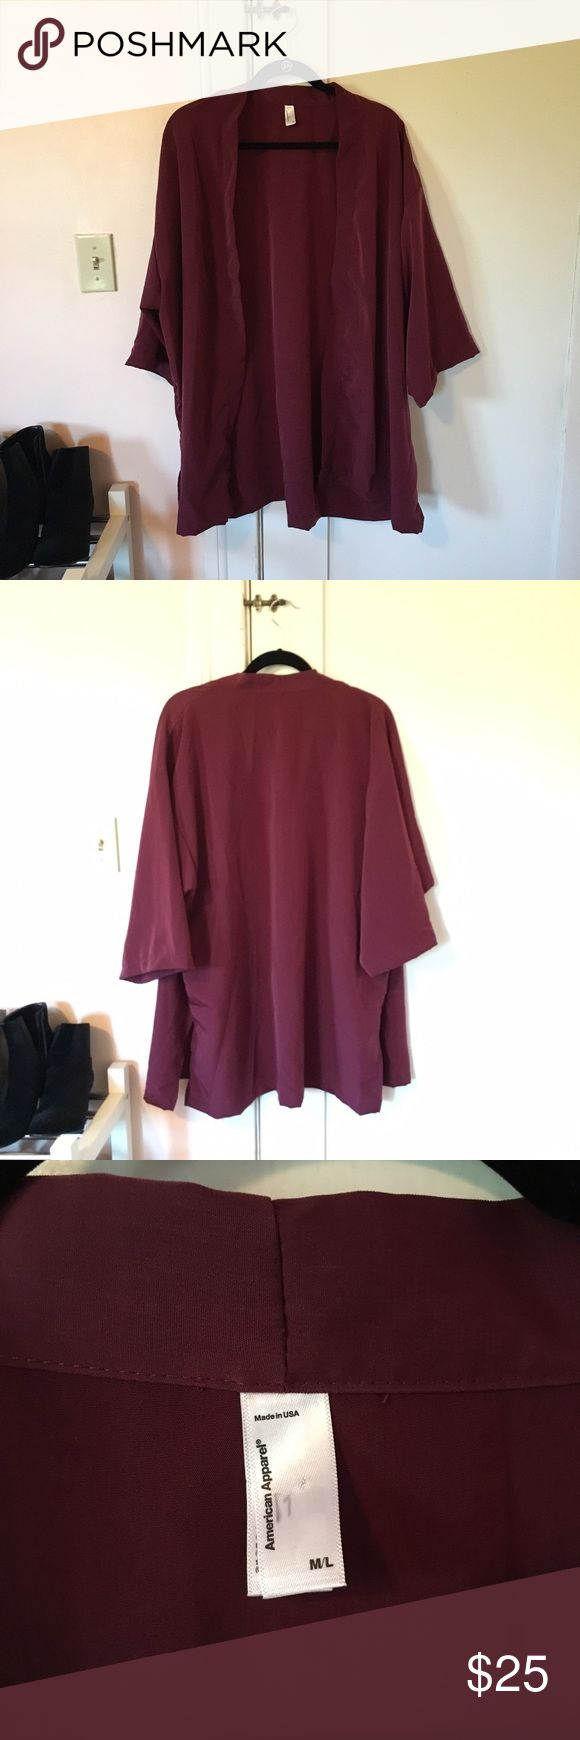 American Apparel Maroon Kimono Never worn red kimono from American Apparel. Size Medium/large but will fit a small. Arm width: 10 inches. Length: 31.5 inches American Apparel Jackets & Coats